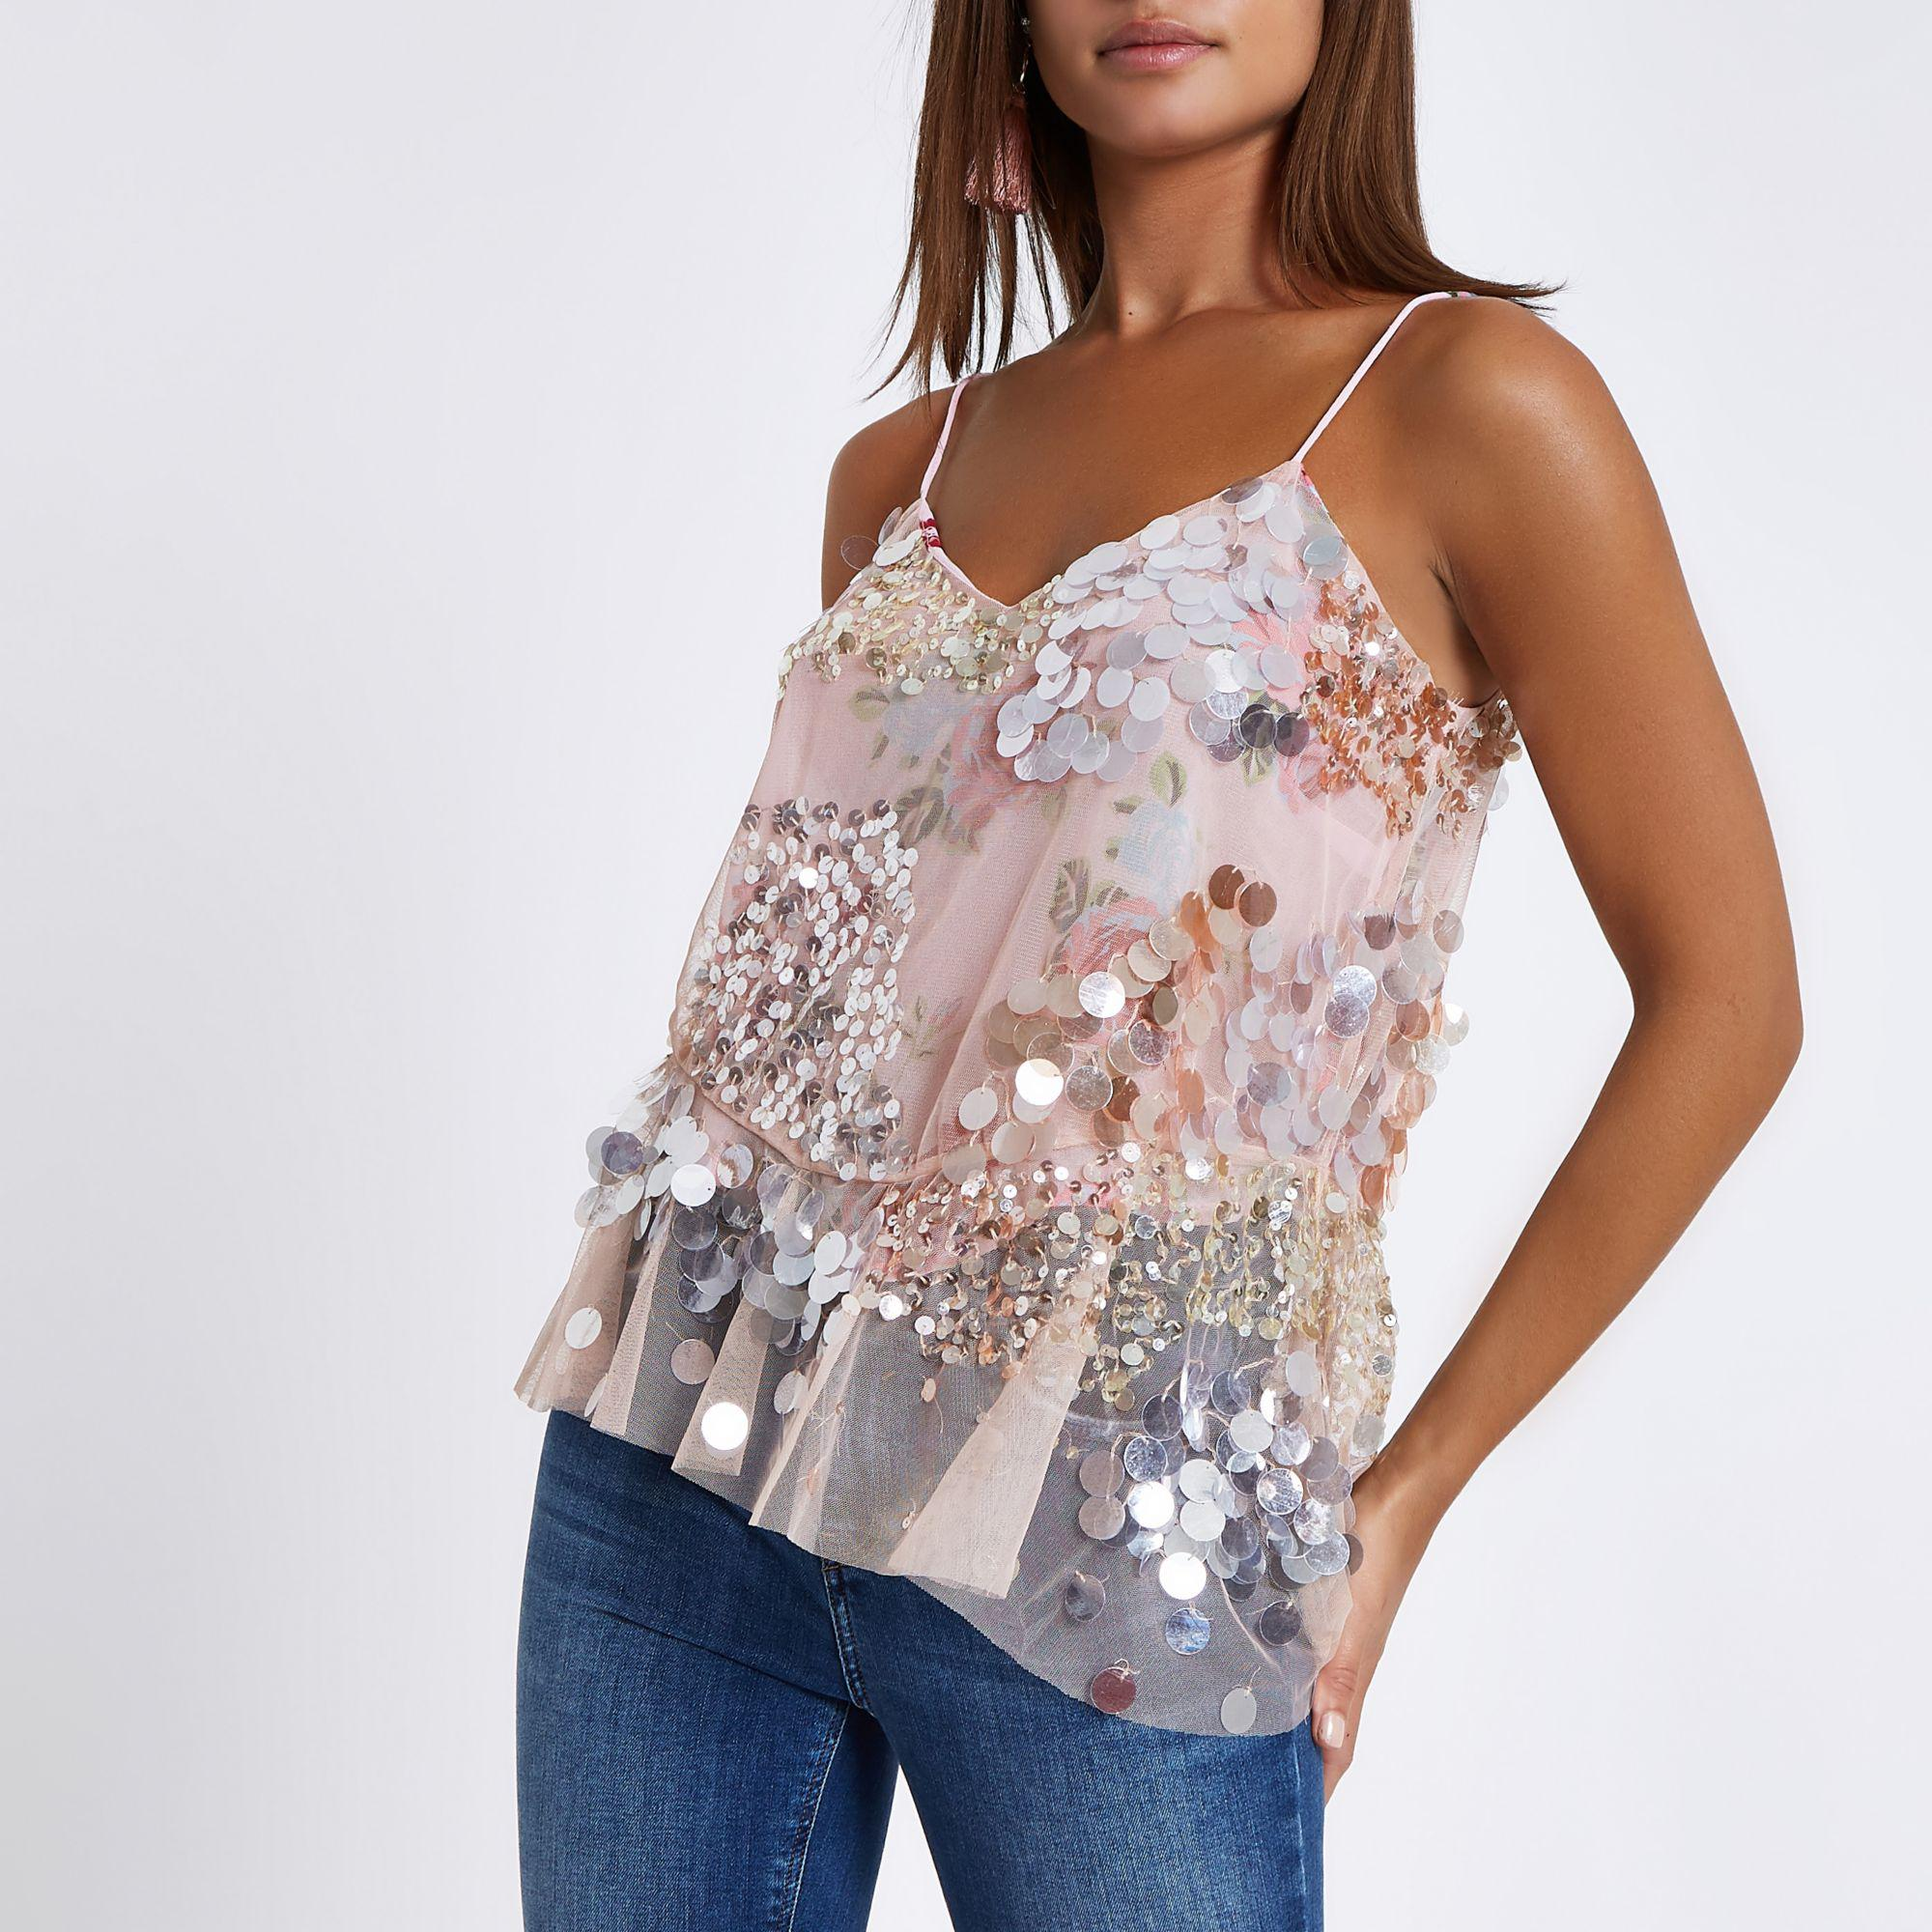 63c2c73aa3f6c9 River Island Sequin Floral Embellished Cami Top in Pink - Lyst